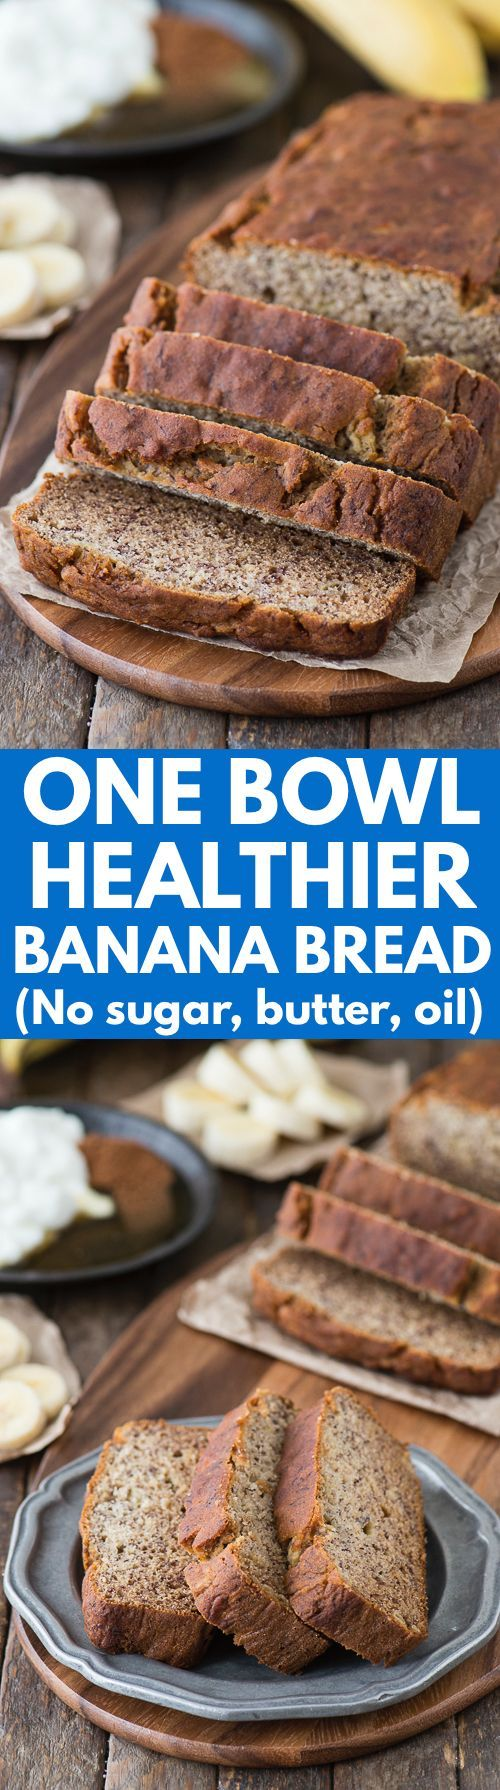 One bowl healthier banana bread recipe via The First Year with no sugar, butter, or oil!